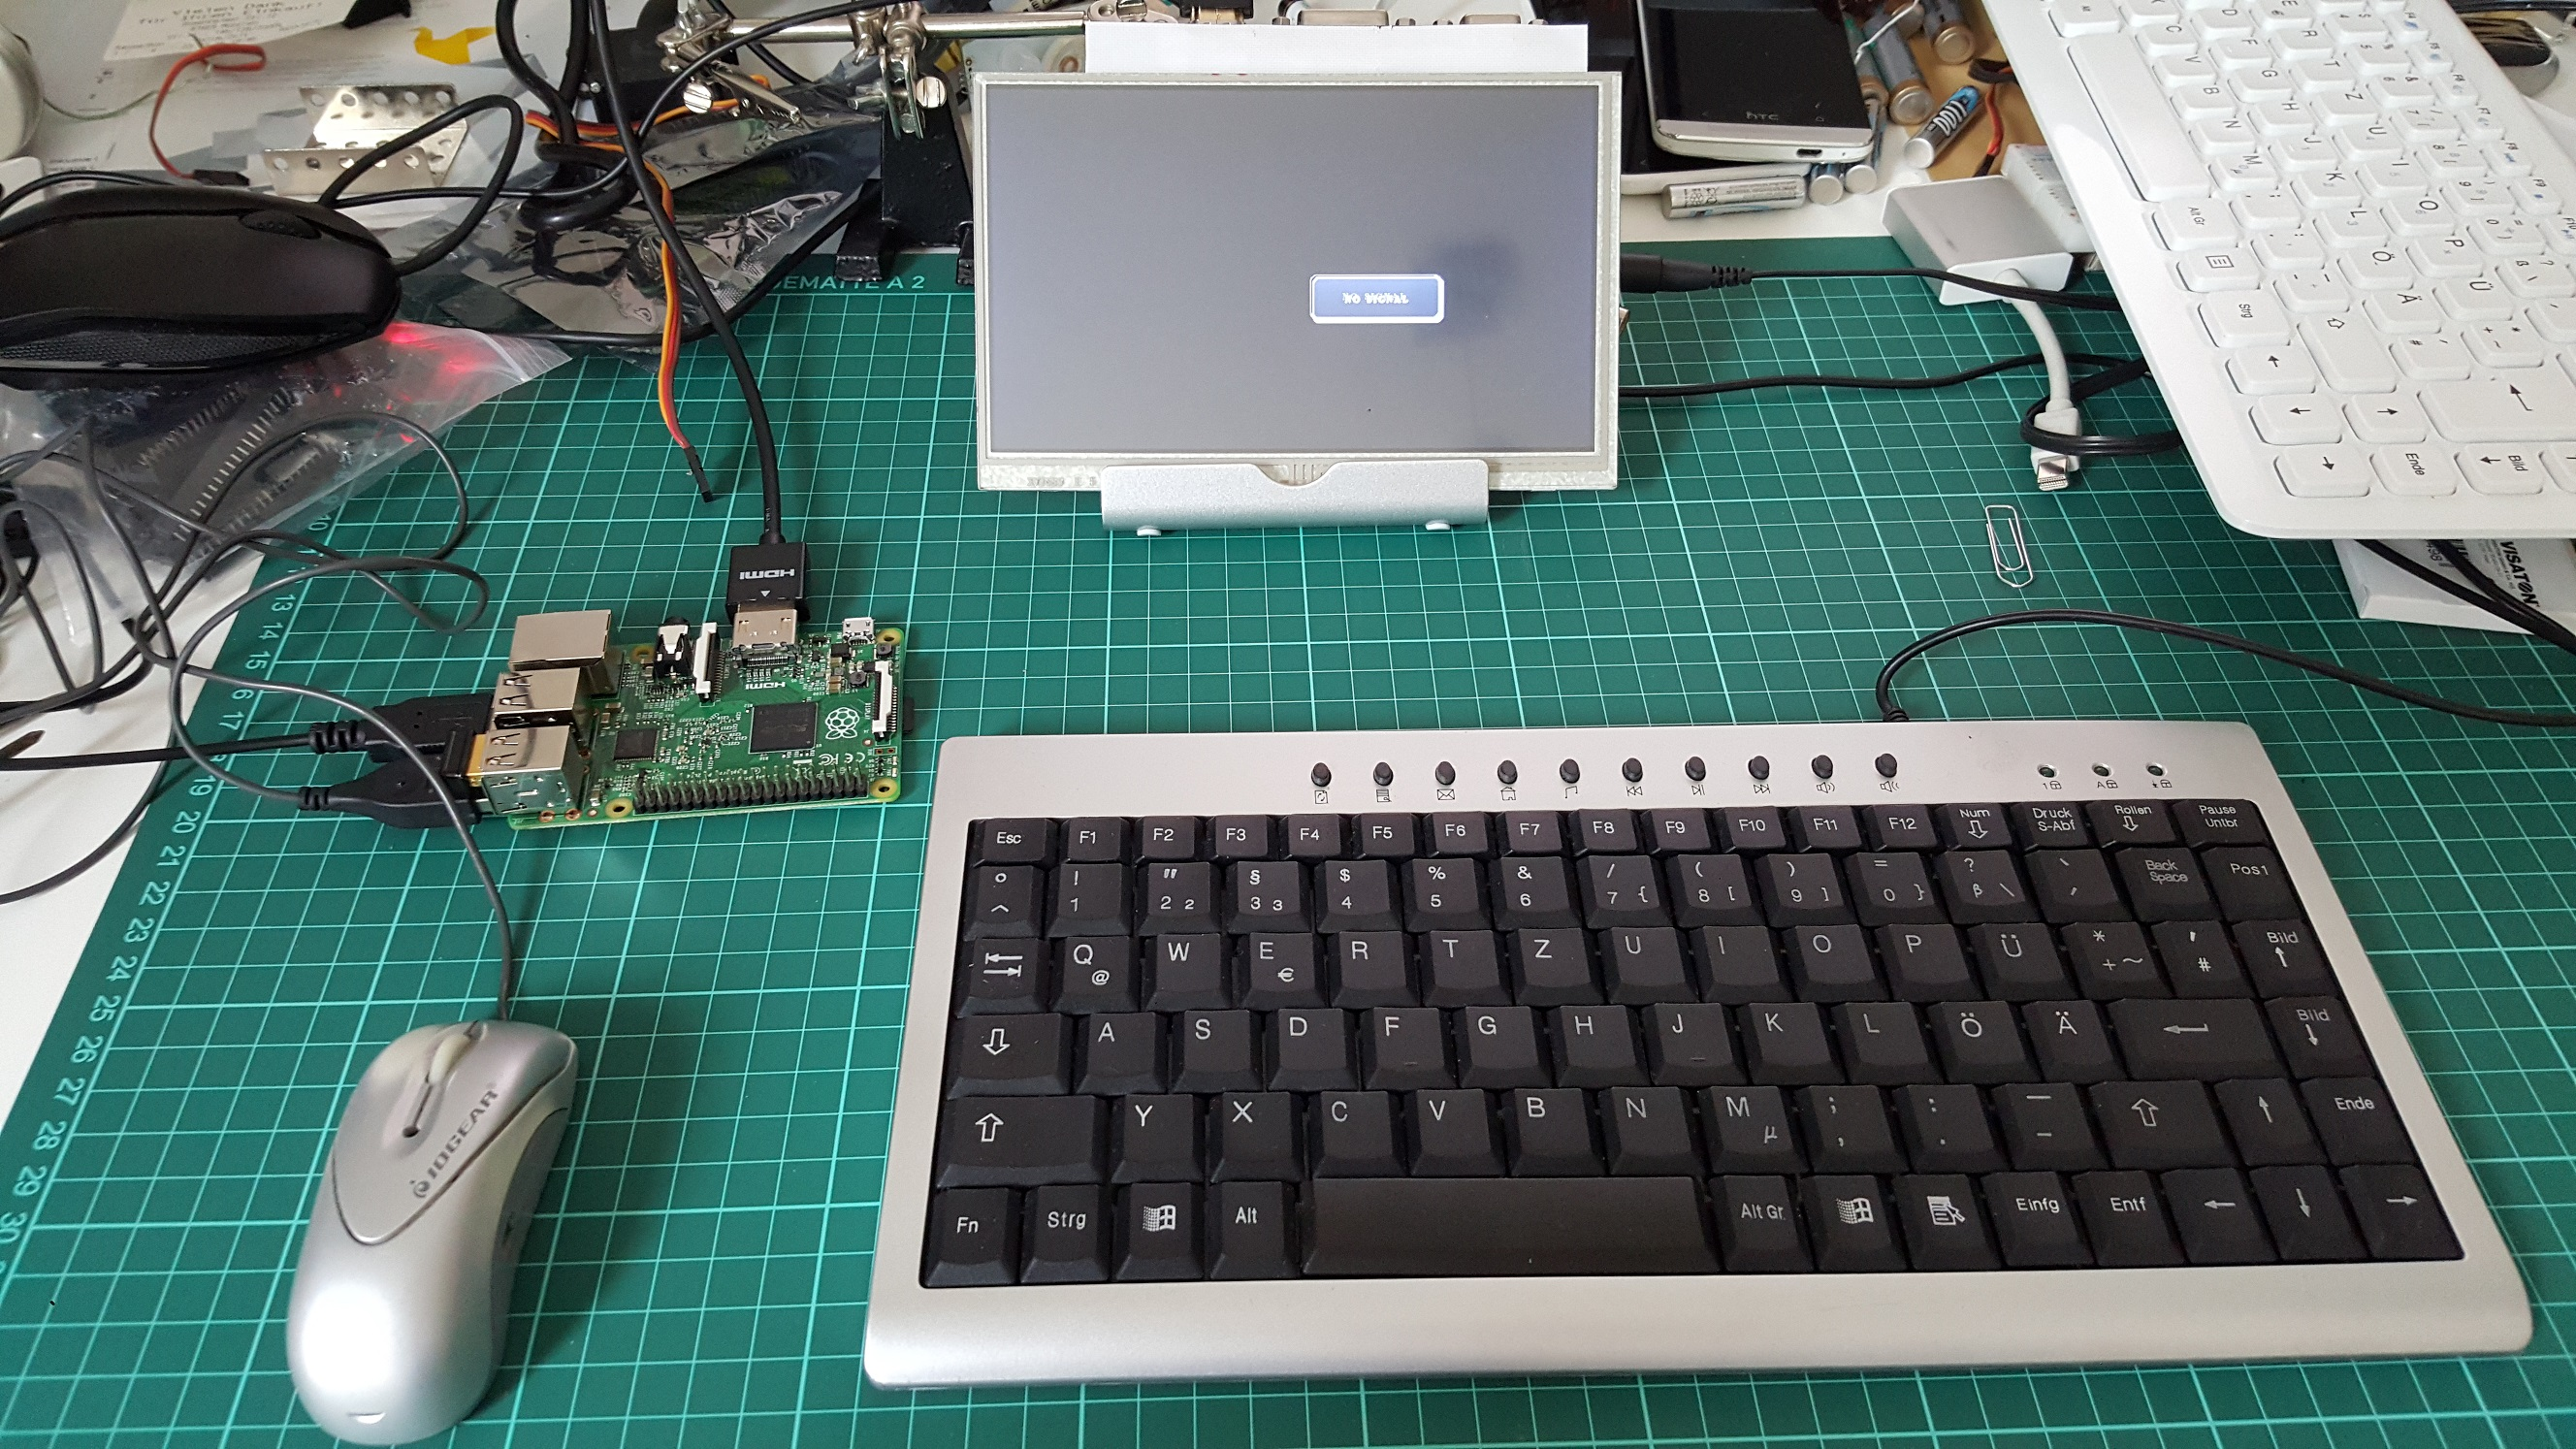 raspberry pi setup with keyboard, mouse and display